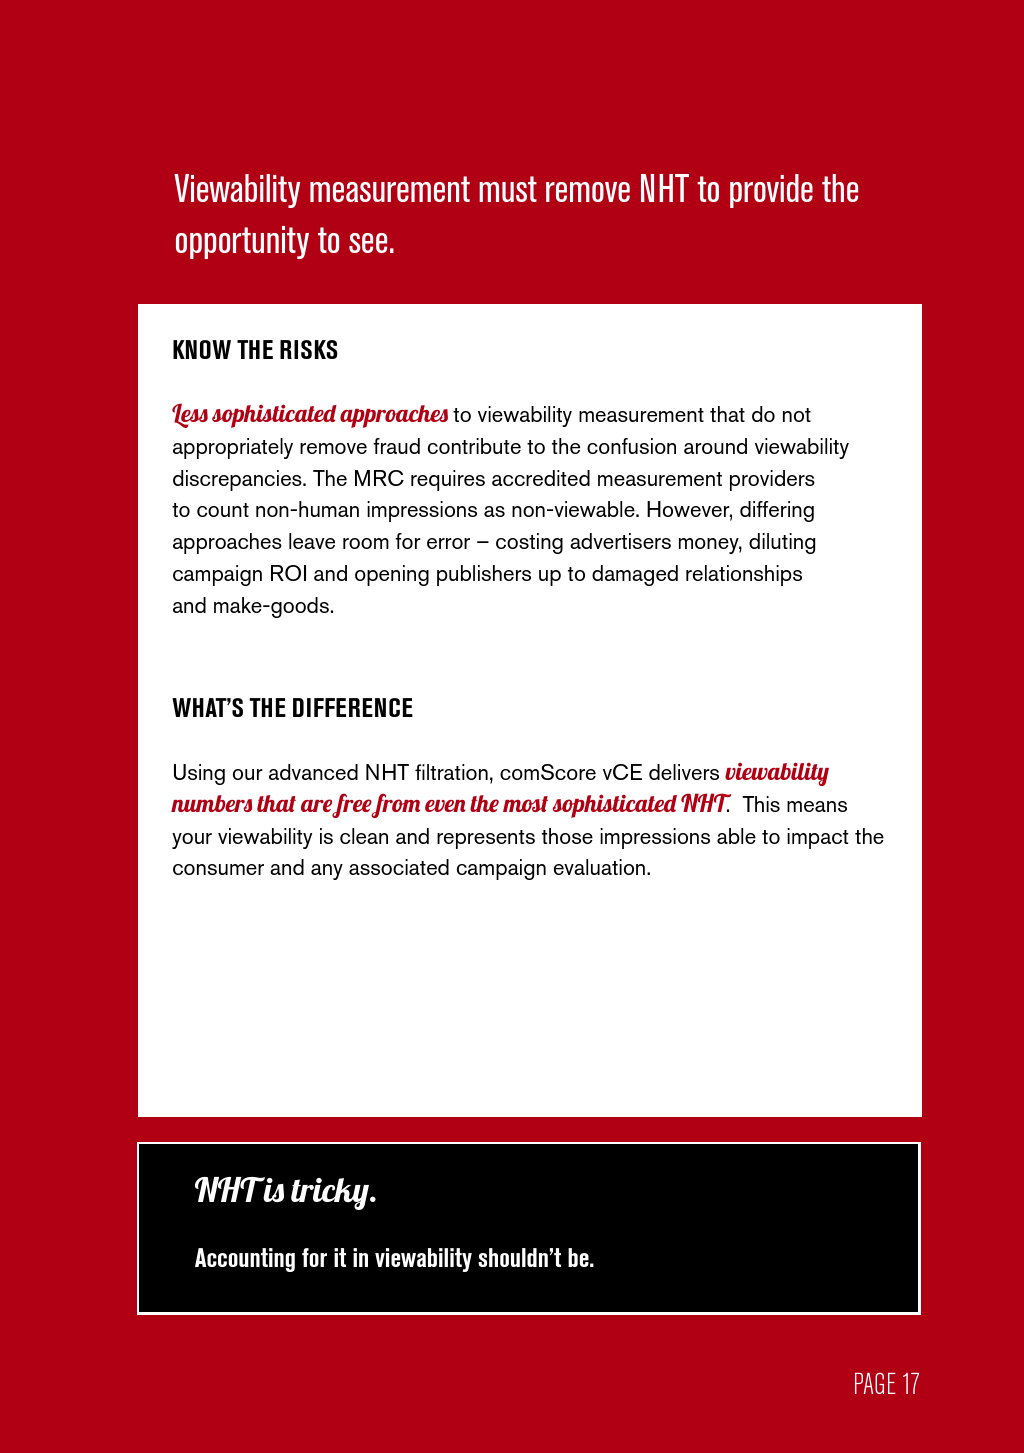 NHT-why-it-matters_000017